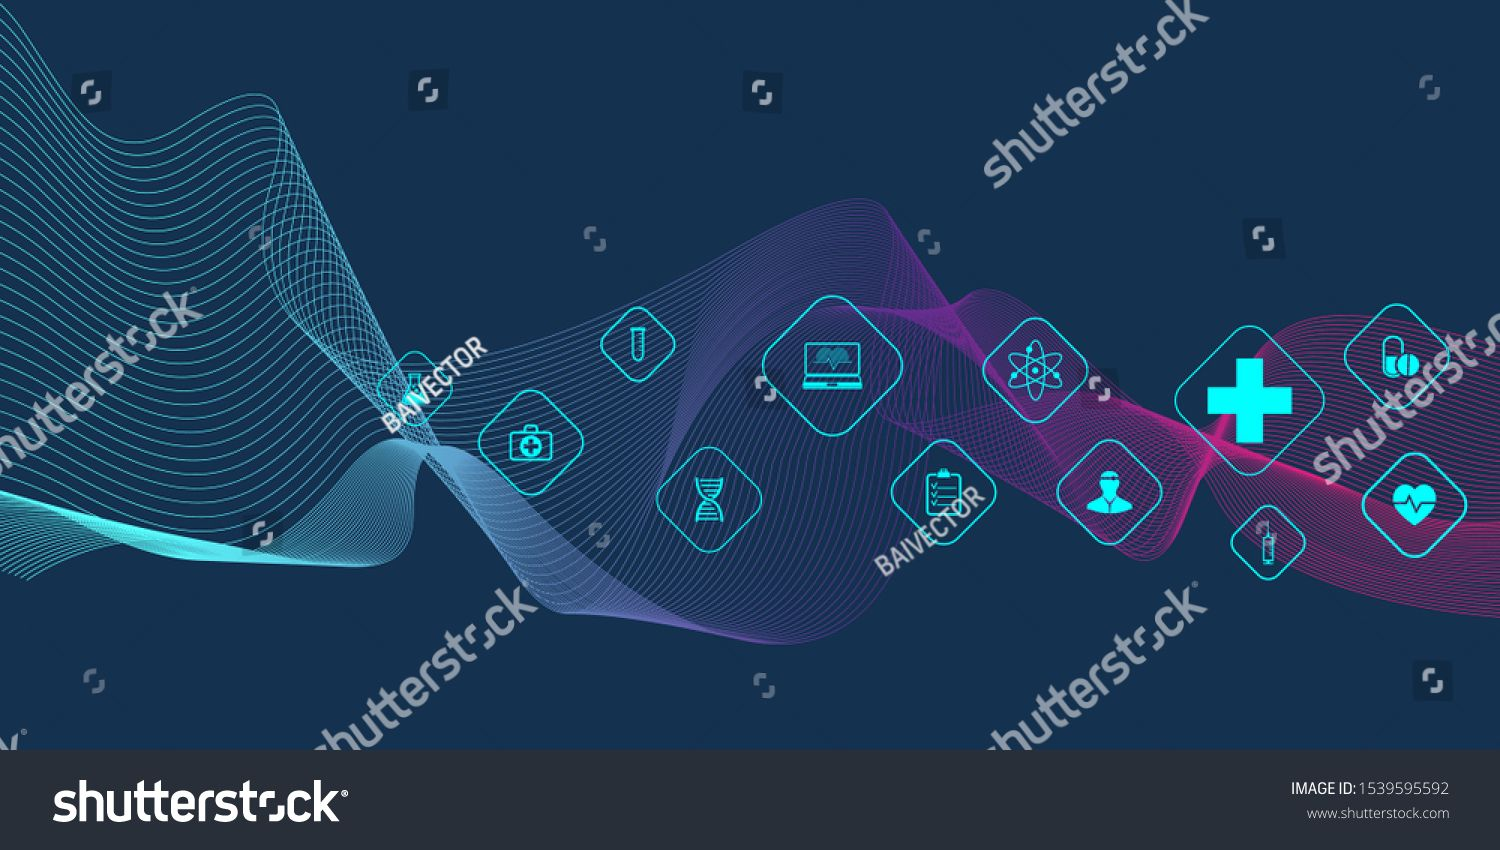 Abstract Health Care Banner Template With Flat Icons Healthcare Medicine Concept Medical Innovation Techno Healthcare Logo Banner Template Technology Posters